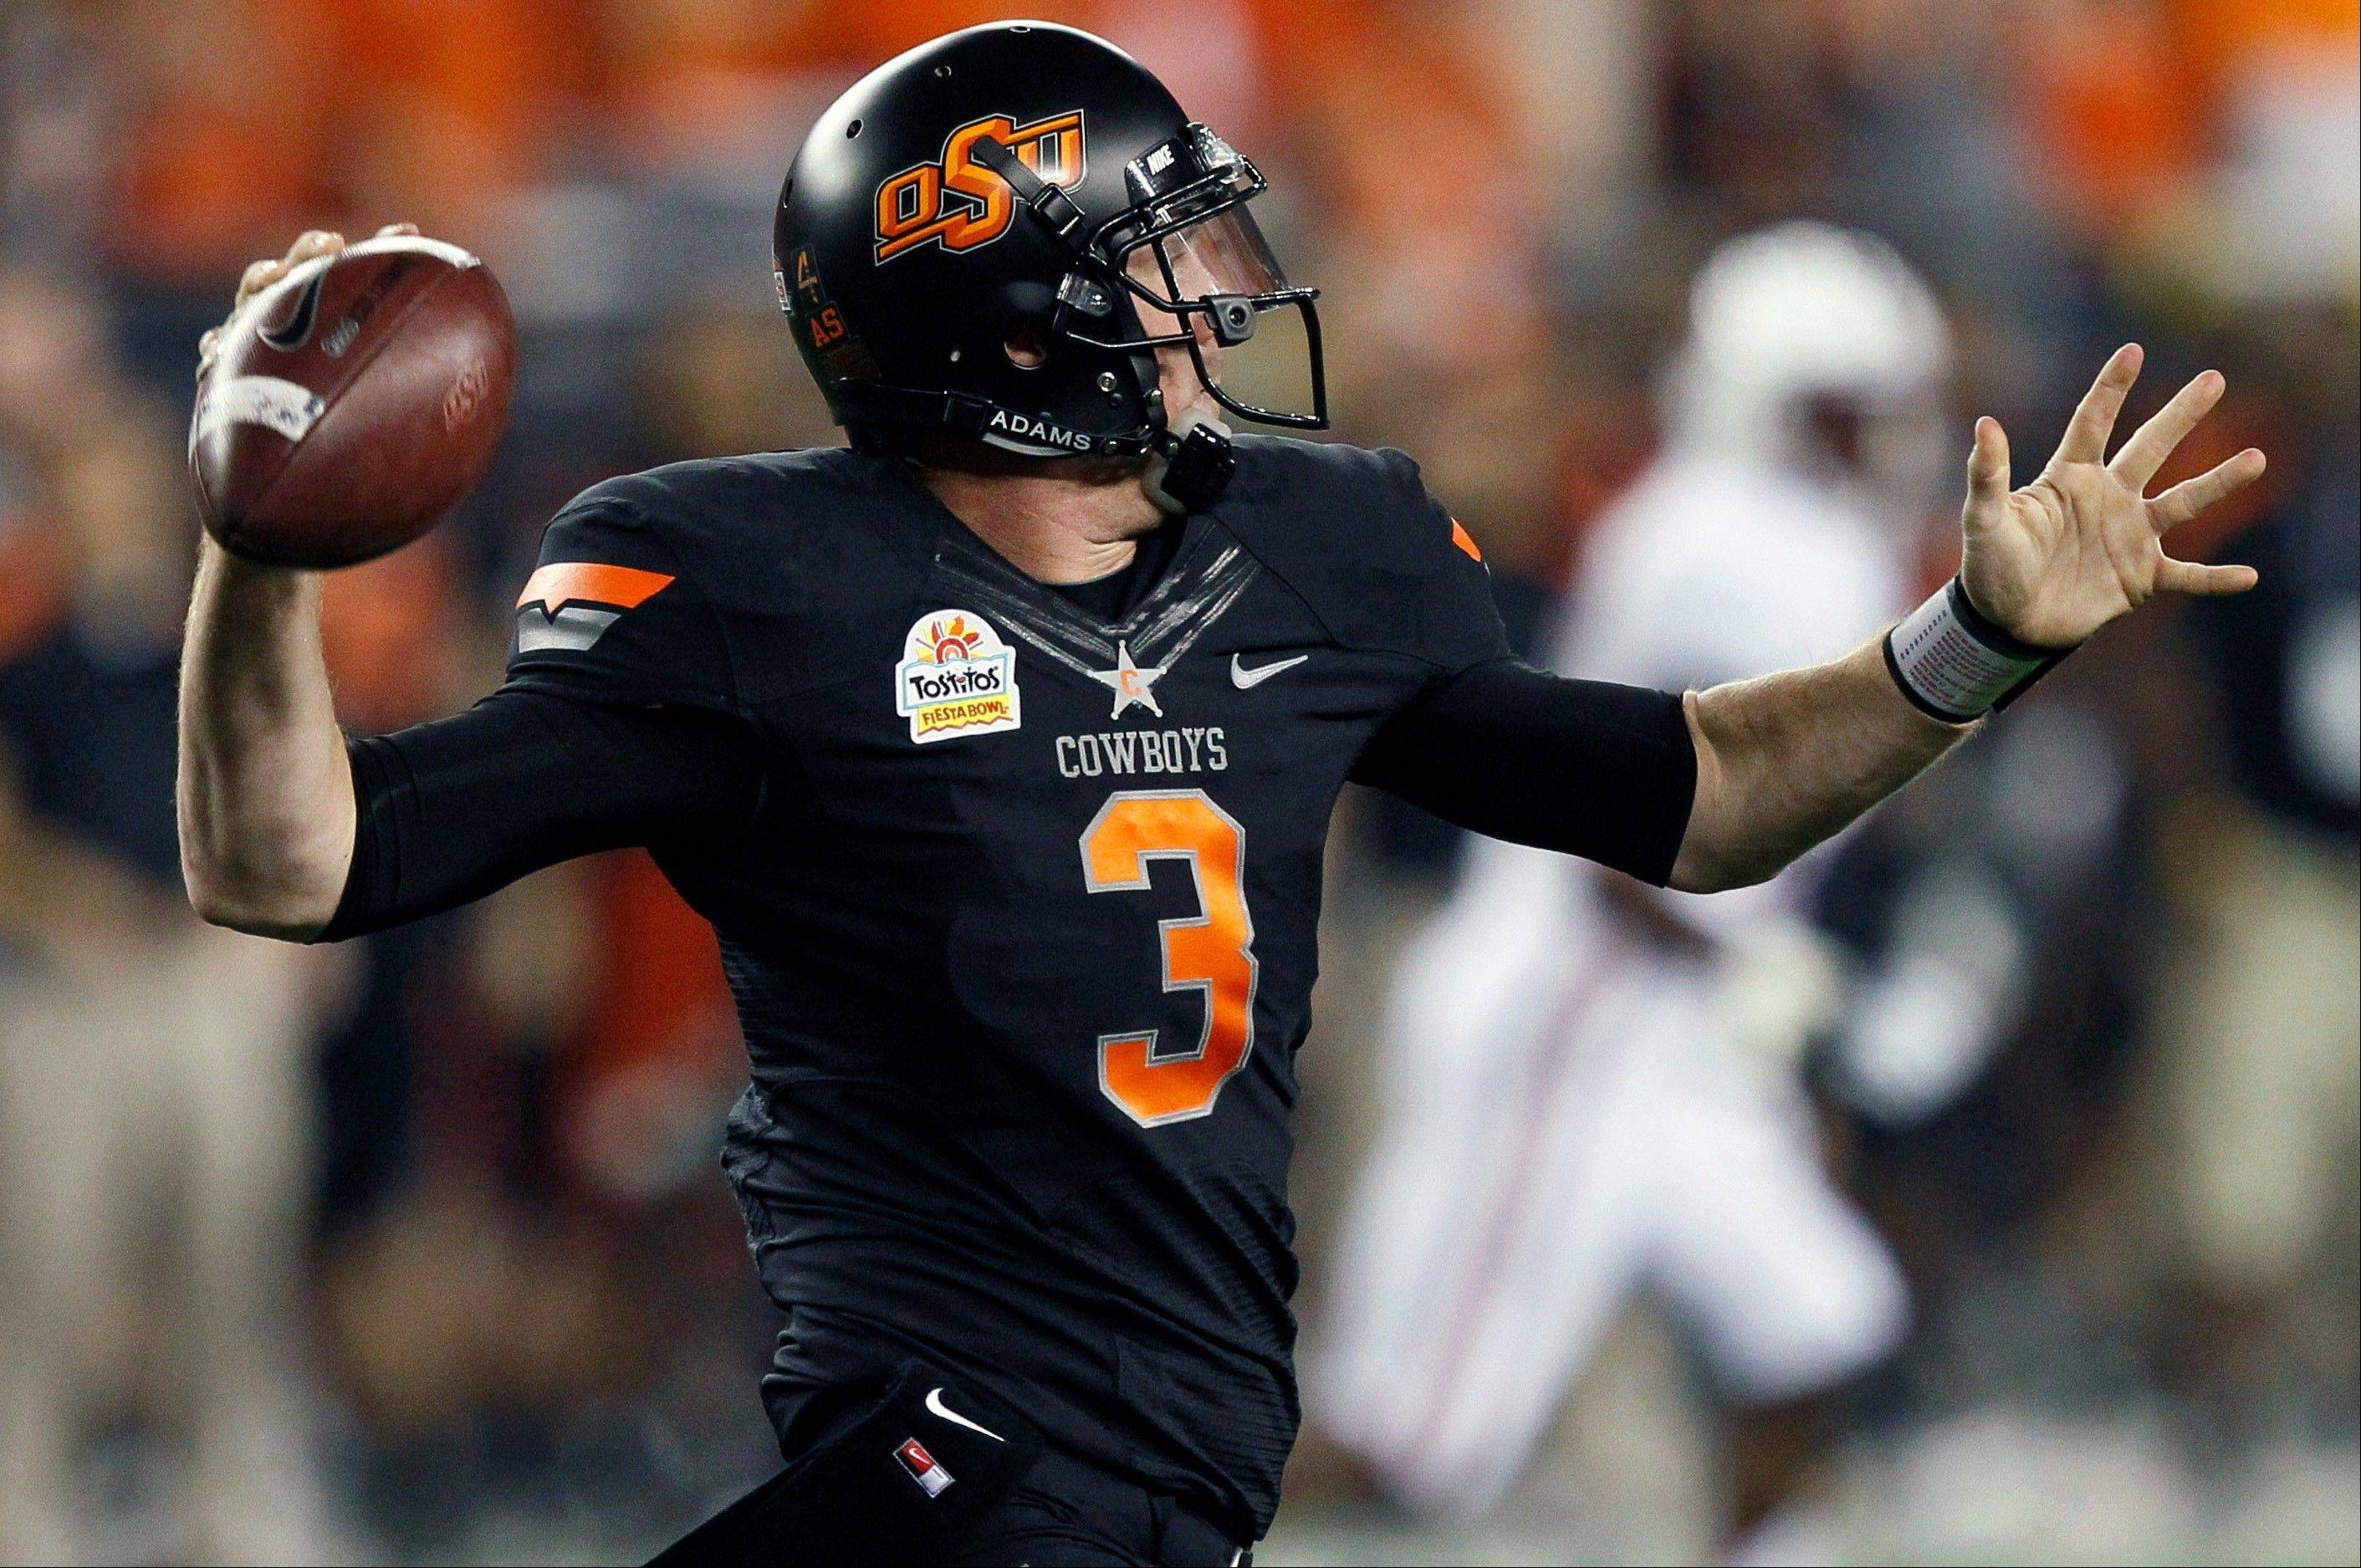 Oklahoma State quarterback Brandon Weeden was selected as the 22nd pick overall by the Cleveland Browns in the first round of the NFL Draft at Radio City Music Hall.